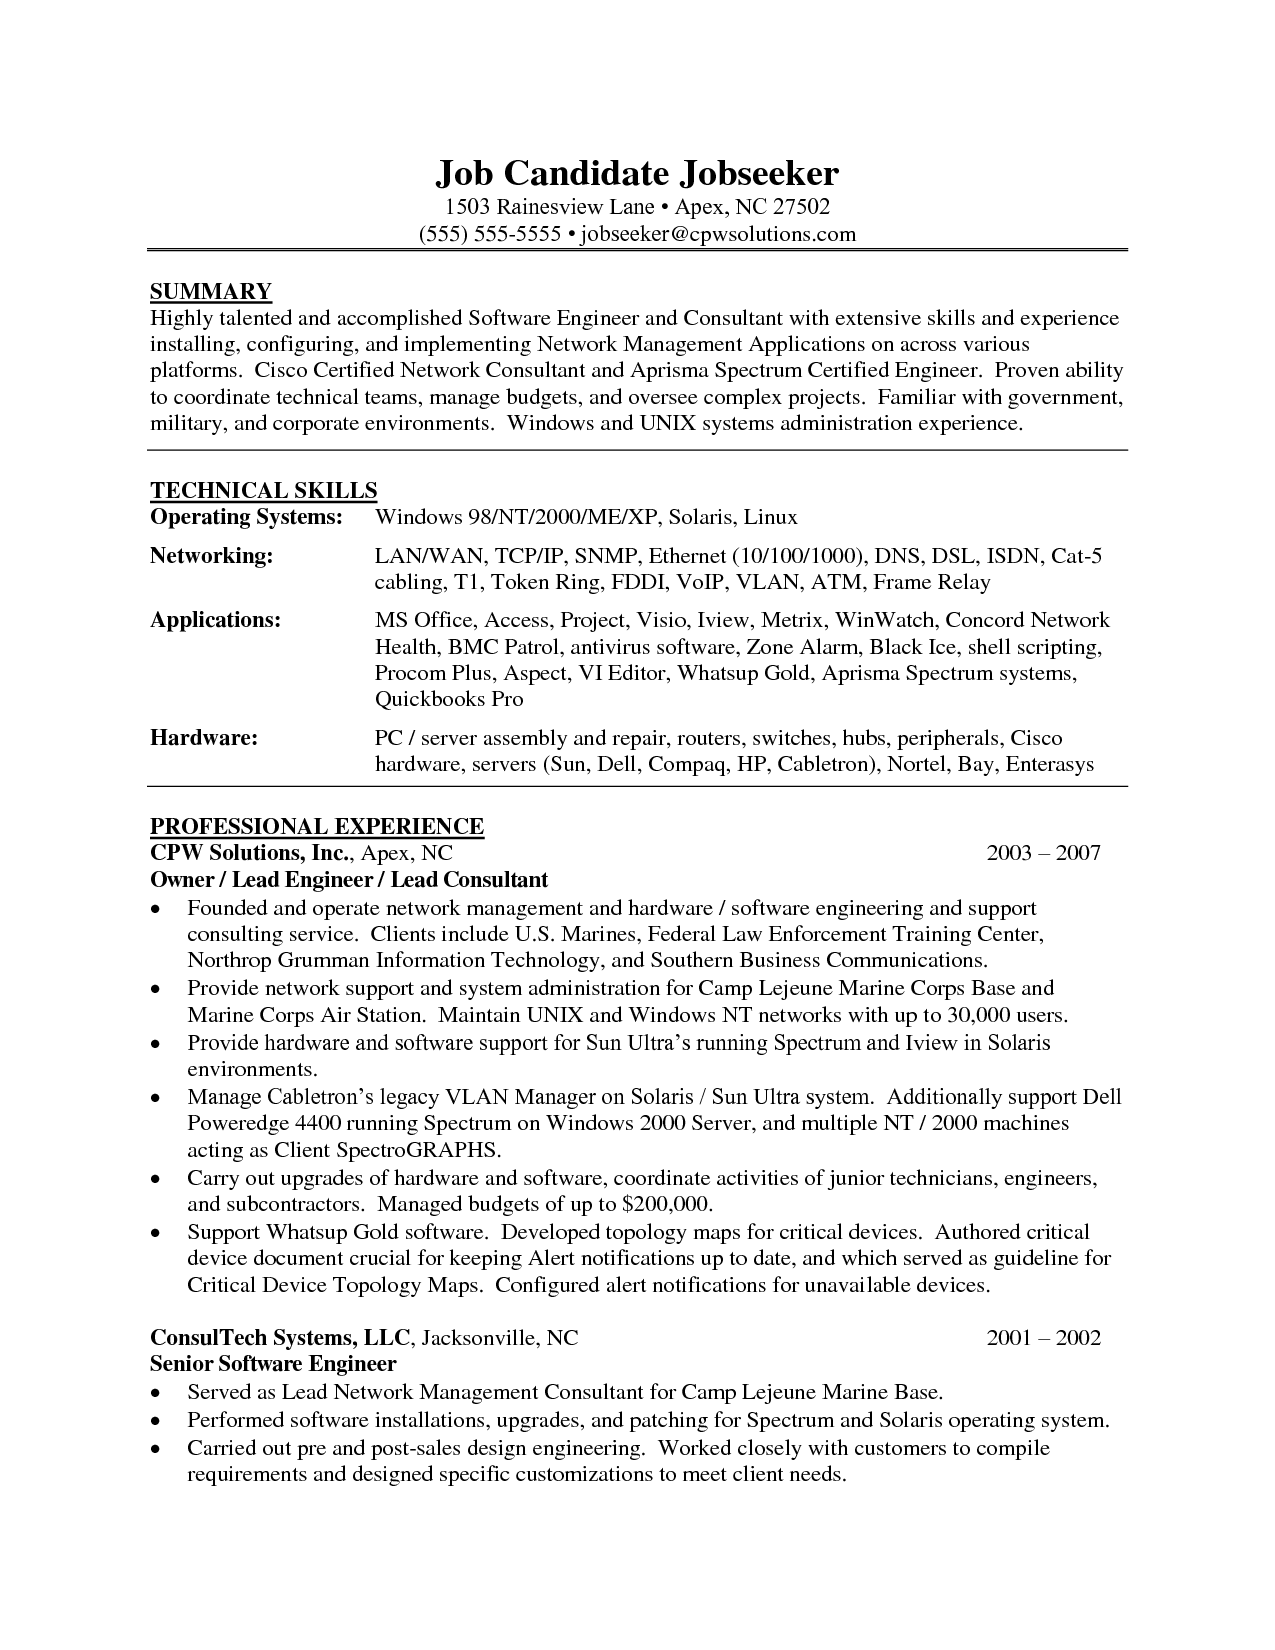 Service Engineer Resume Format How To Write Software Engineer Resume